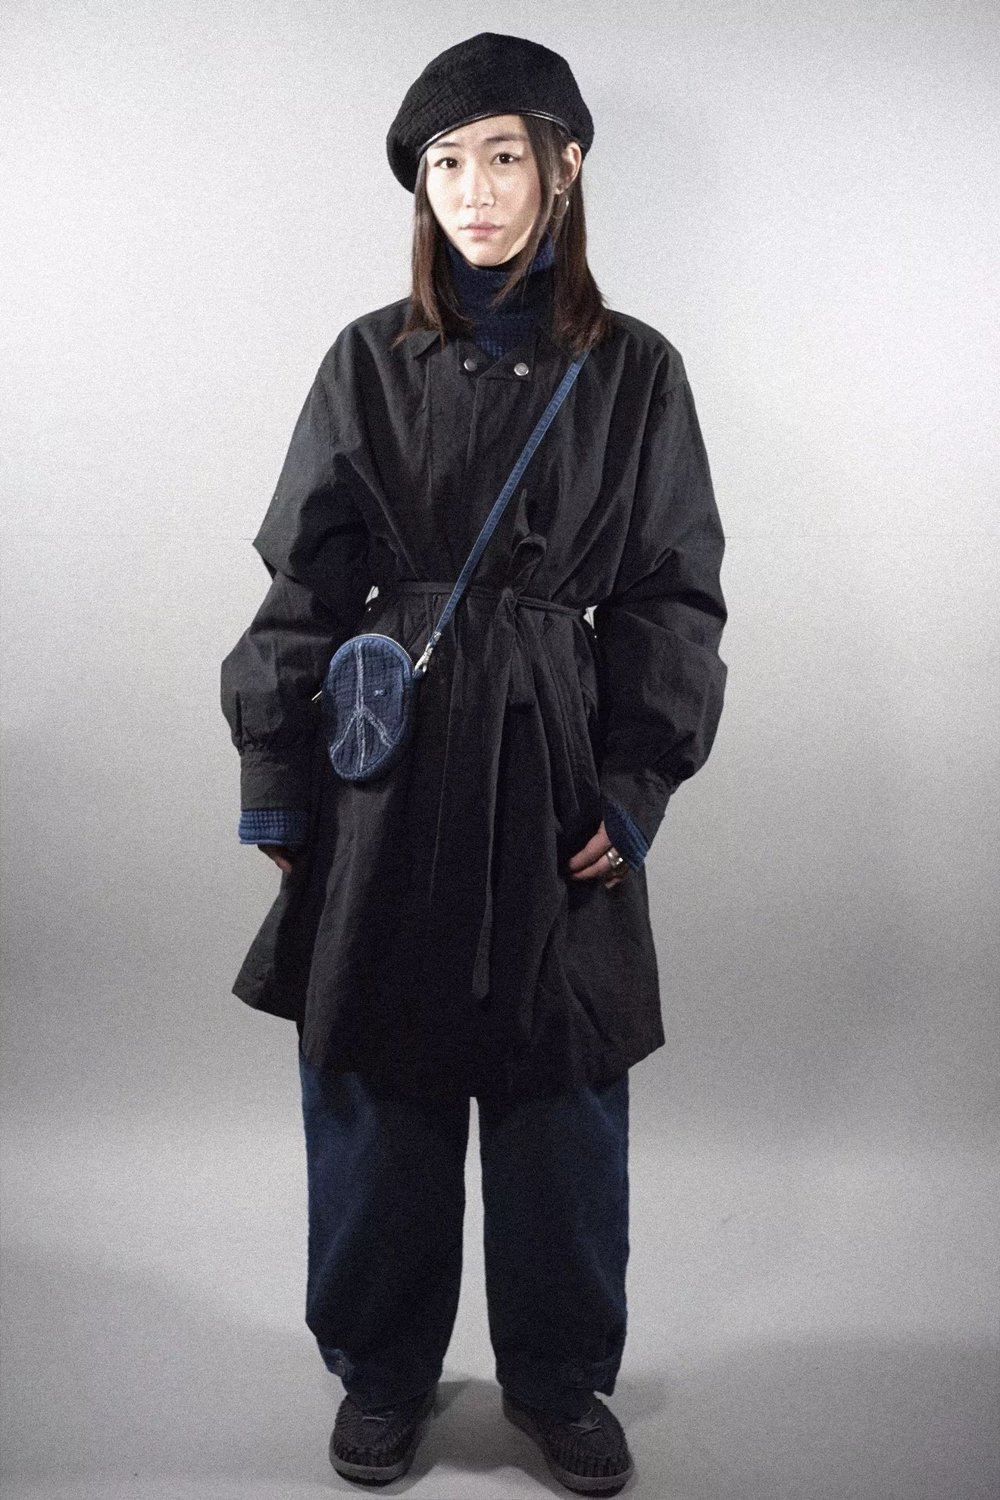 PC - LOCAL BLACK GATHERED COAT - BLACK PC - FRENCH THERMAL TURTLENECK - BLUE PC - CORDUROY PANTS - BLUE PC - KENDO SIMPLE POUCH -BLACK KEEN - UNEEK - BLACK